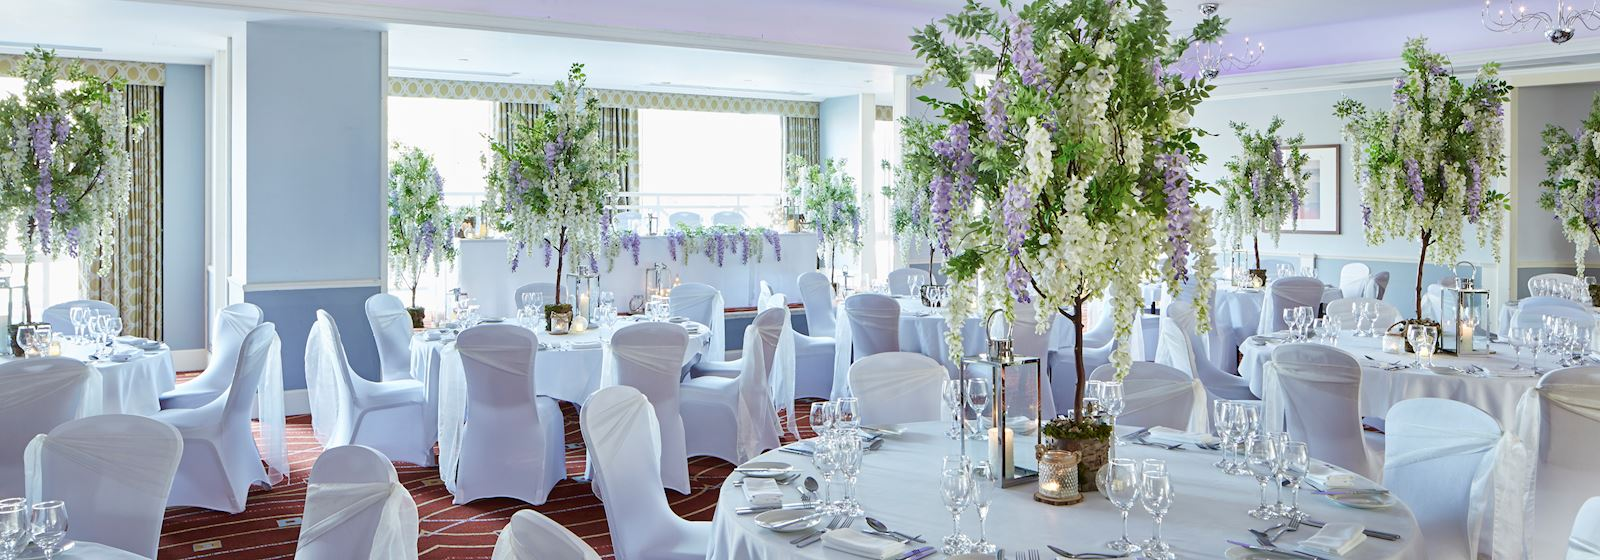 Bexleyheath Marriott Hotel Weddings